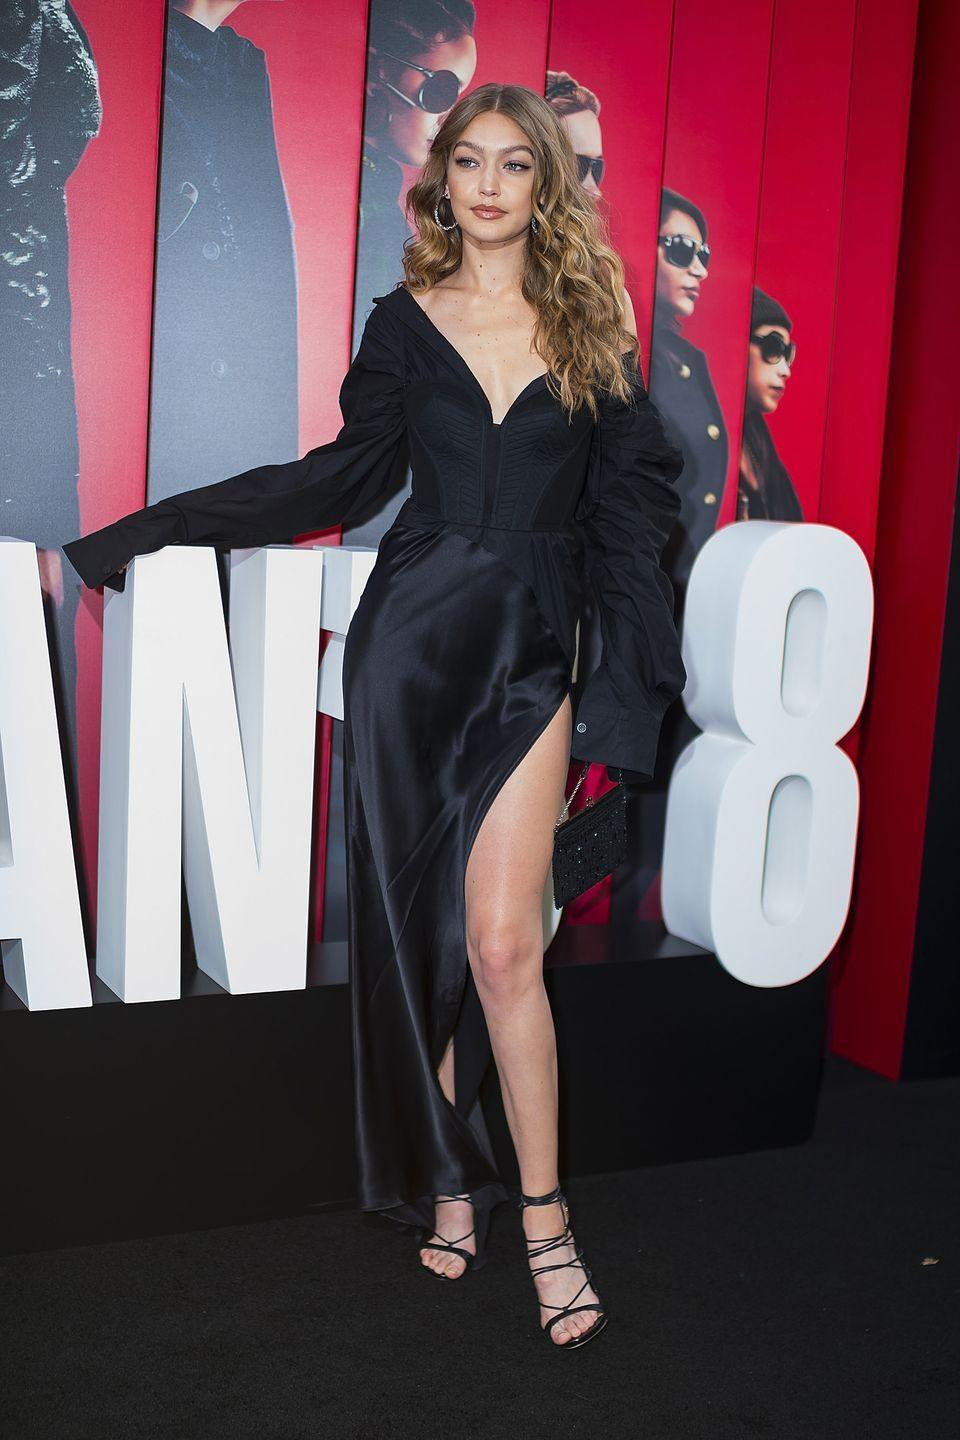 <p>In a Vera Wang black thigh high slit gown walking the red carpet of the New York premiere for <em>Ocean's 8. </em></p>